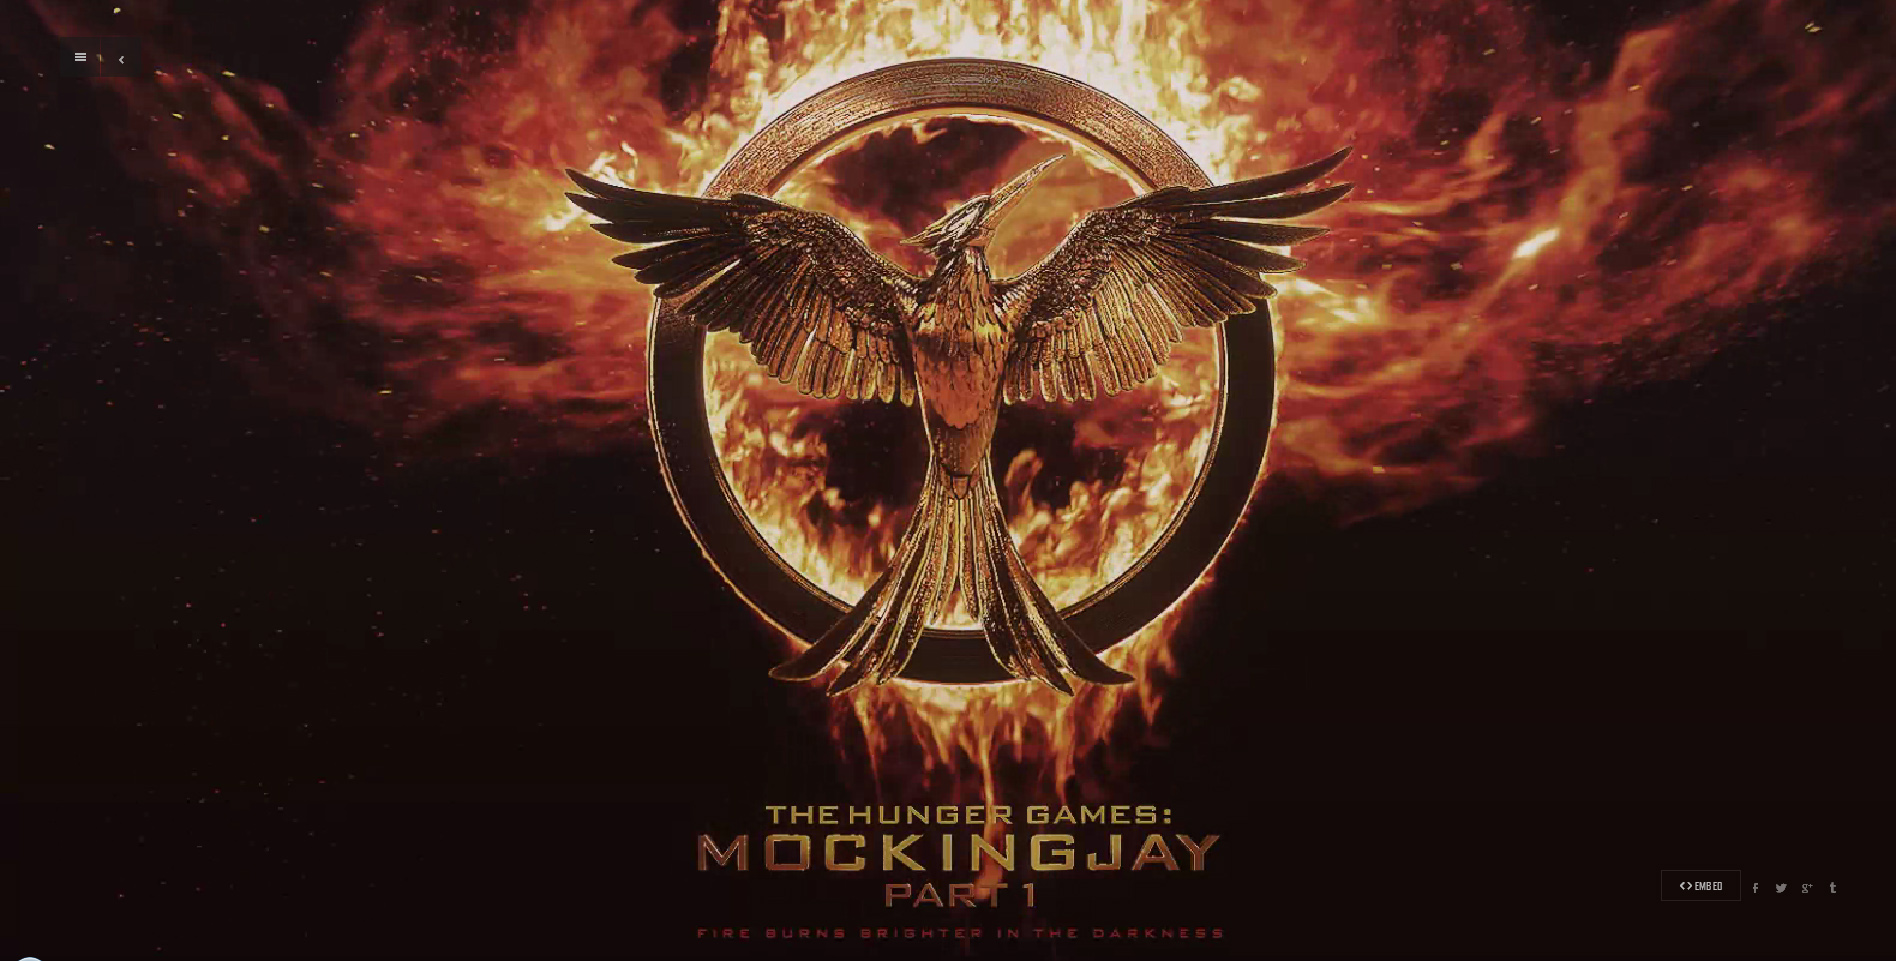 mockingjay-part-1-image-6